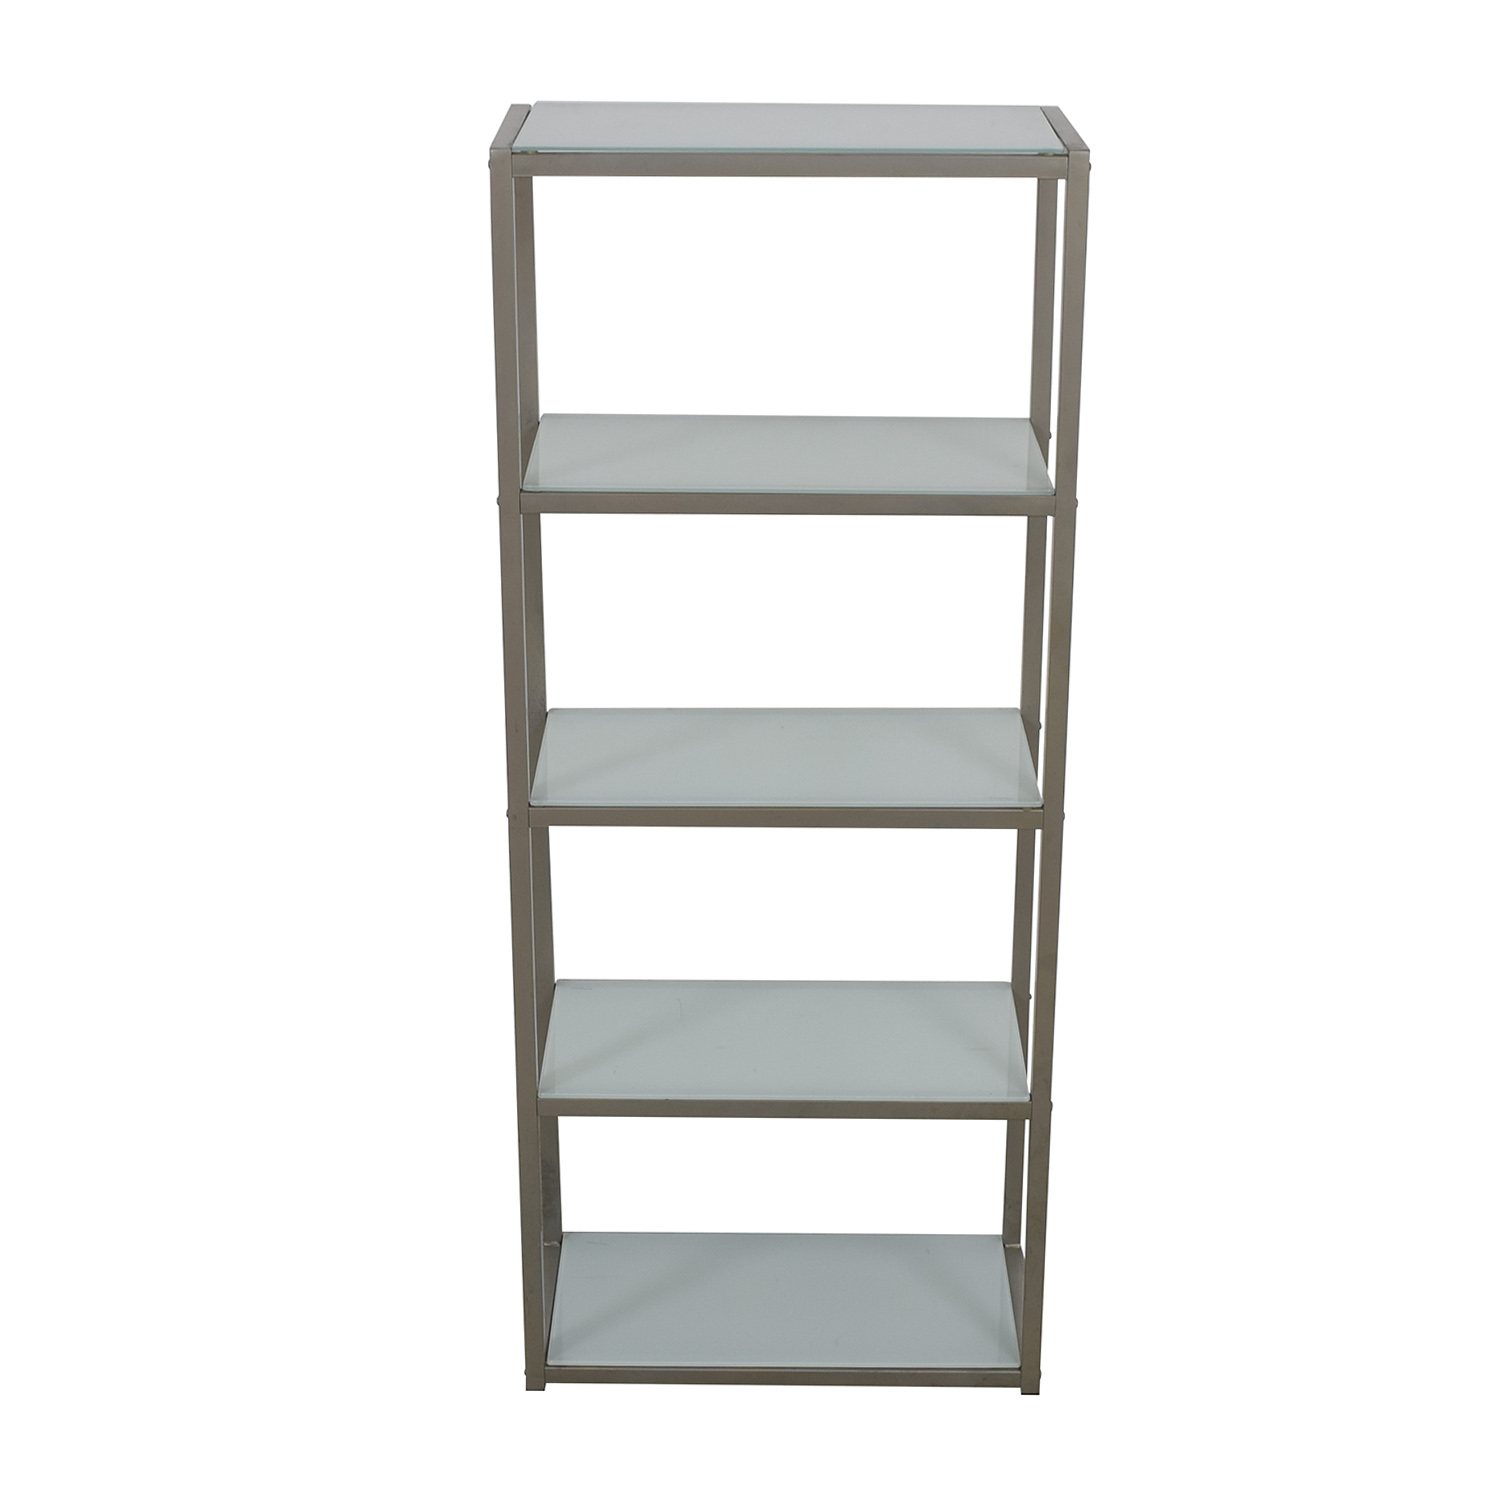 Crate & Barrel Crate & Barrel Pilsen Glass and Chrome Shelves price